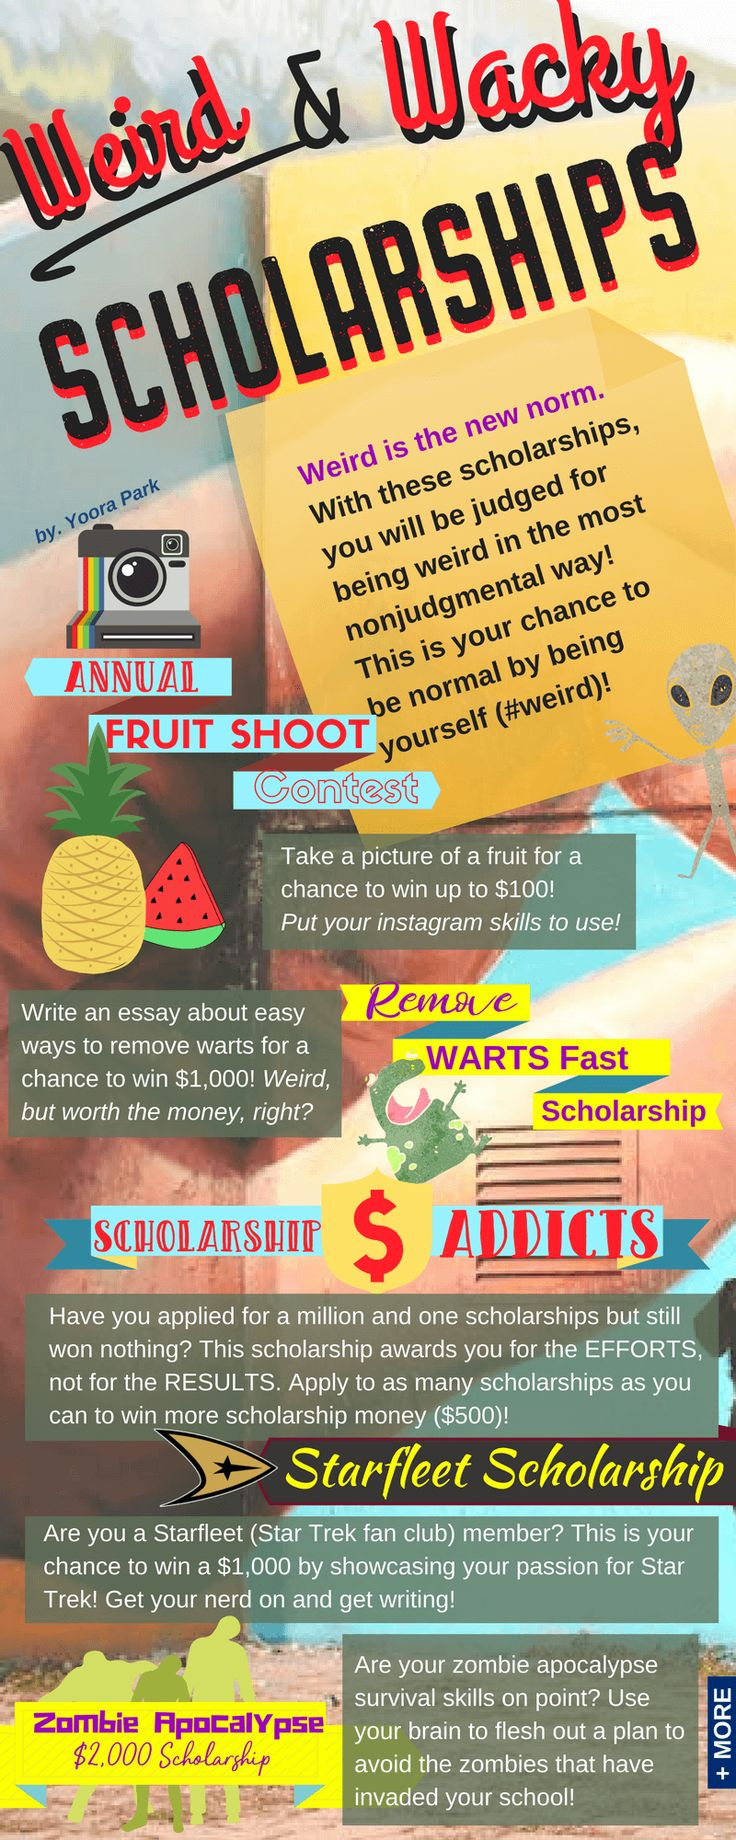 best 25 good colleges ideas on pinterest roommate contract